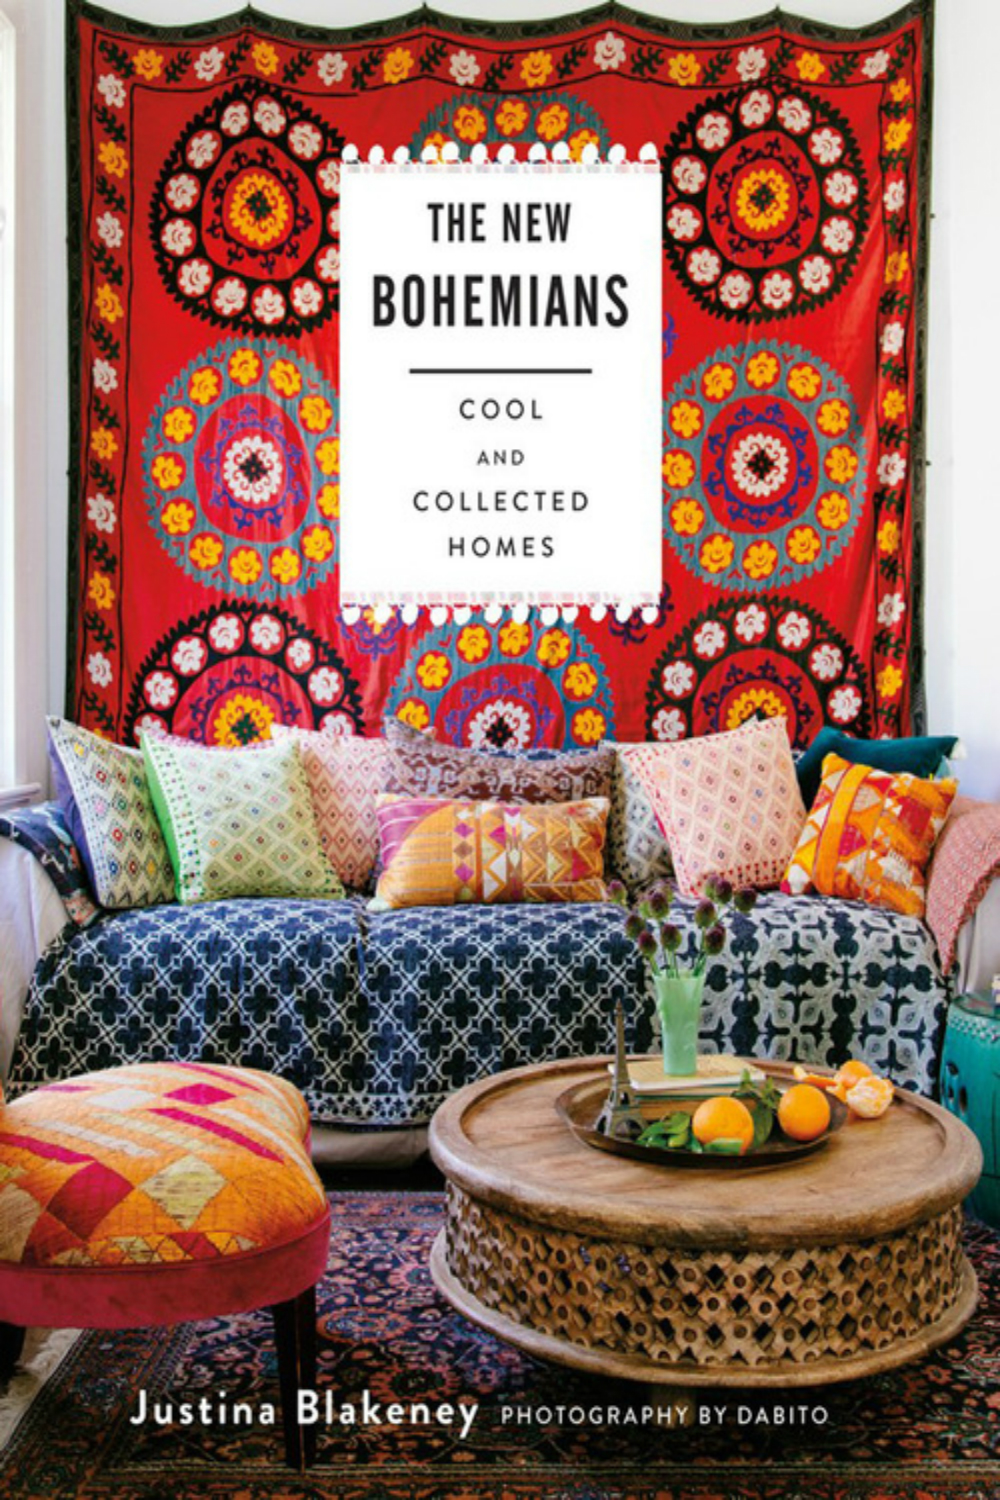 Envy-Inducing! The Best Interiors Books